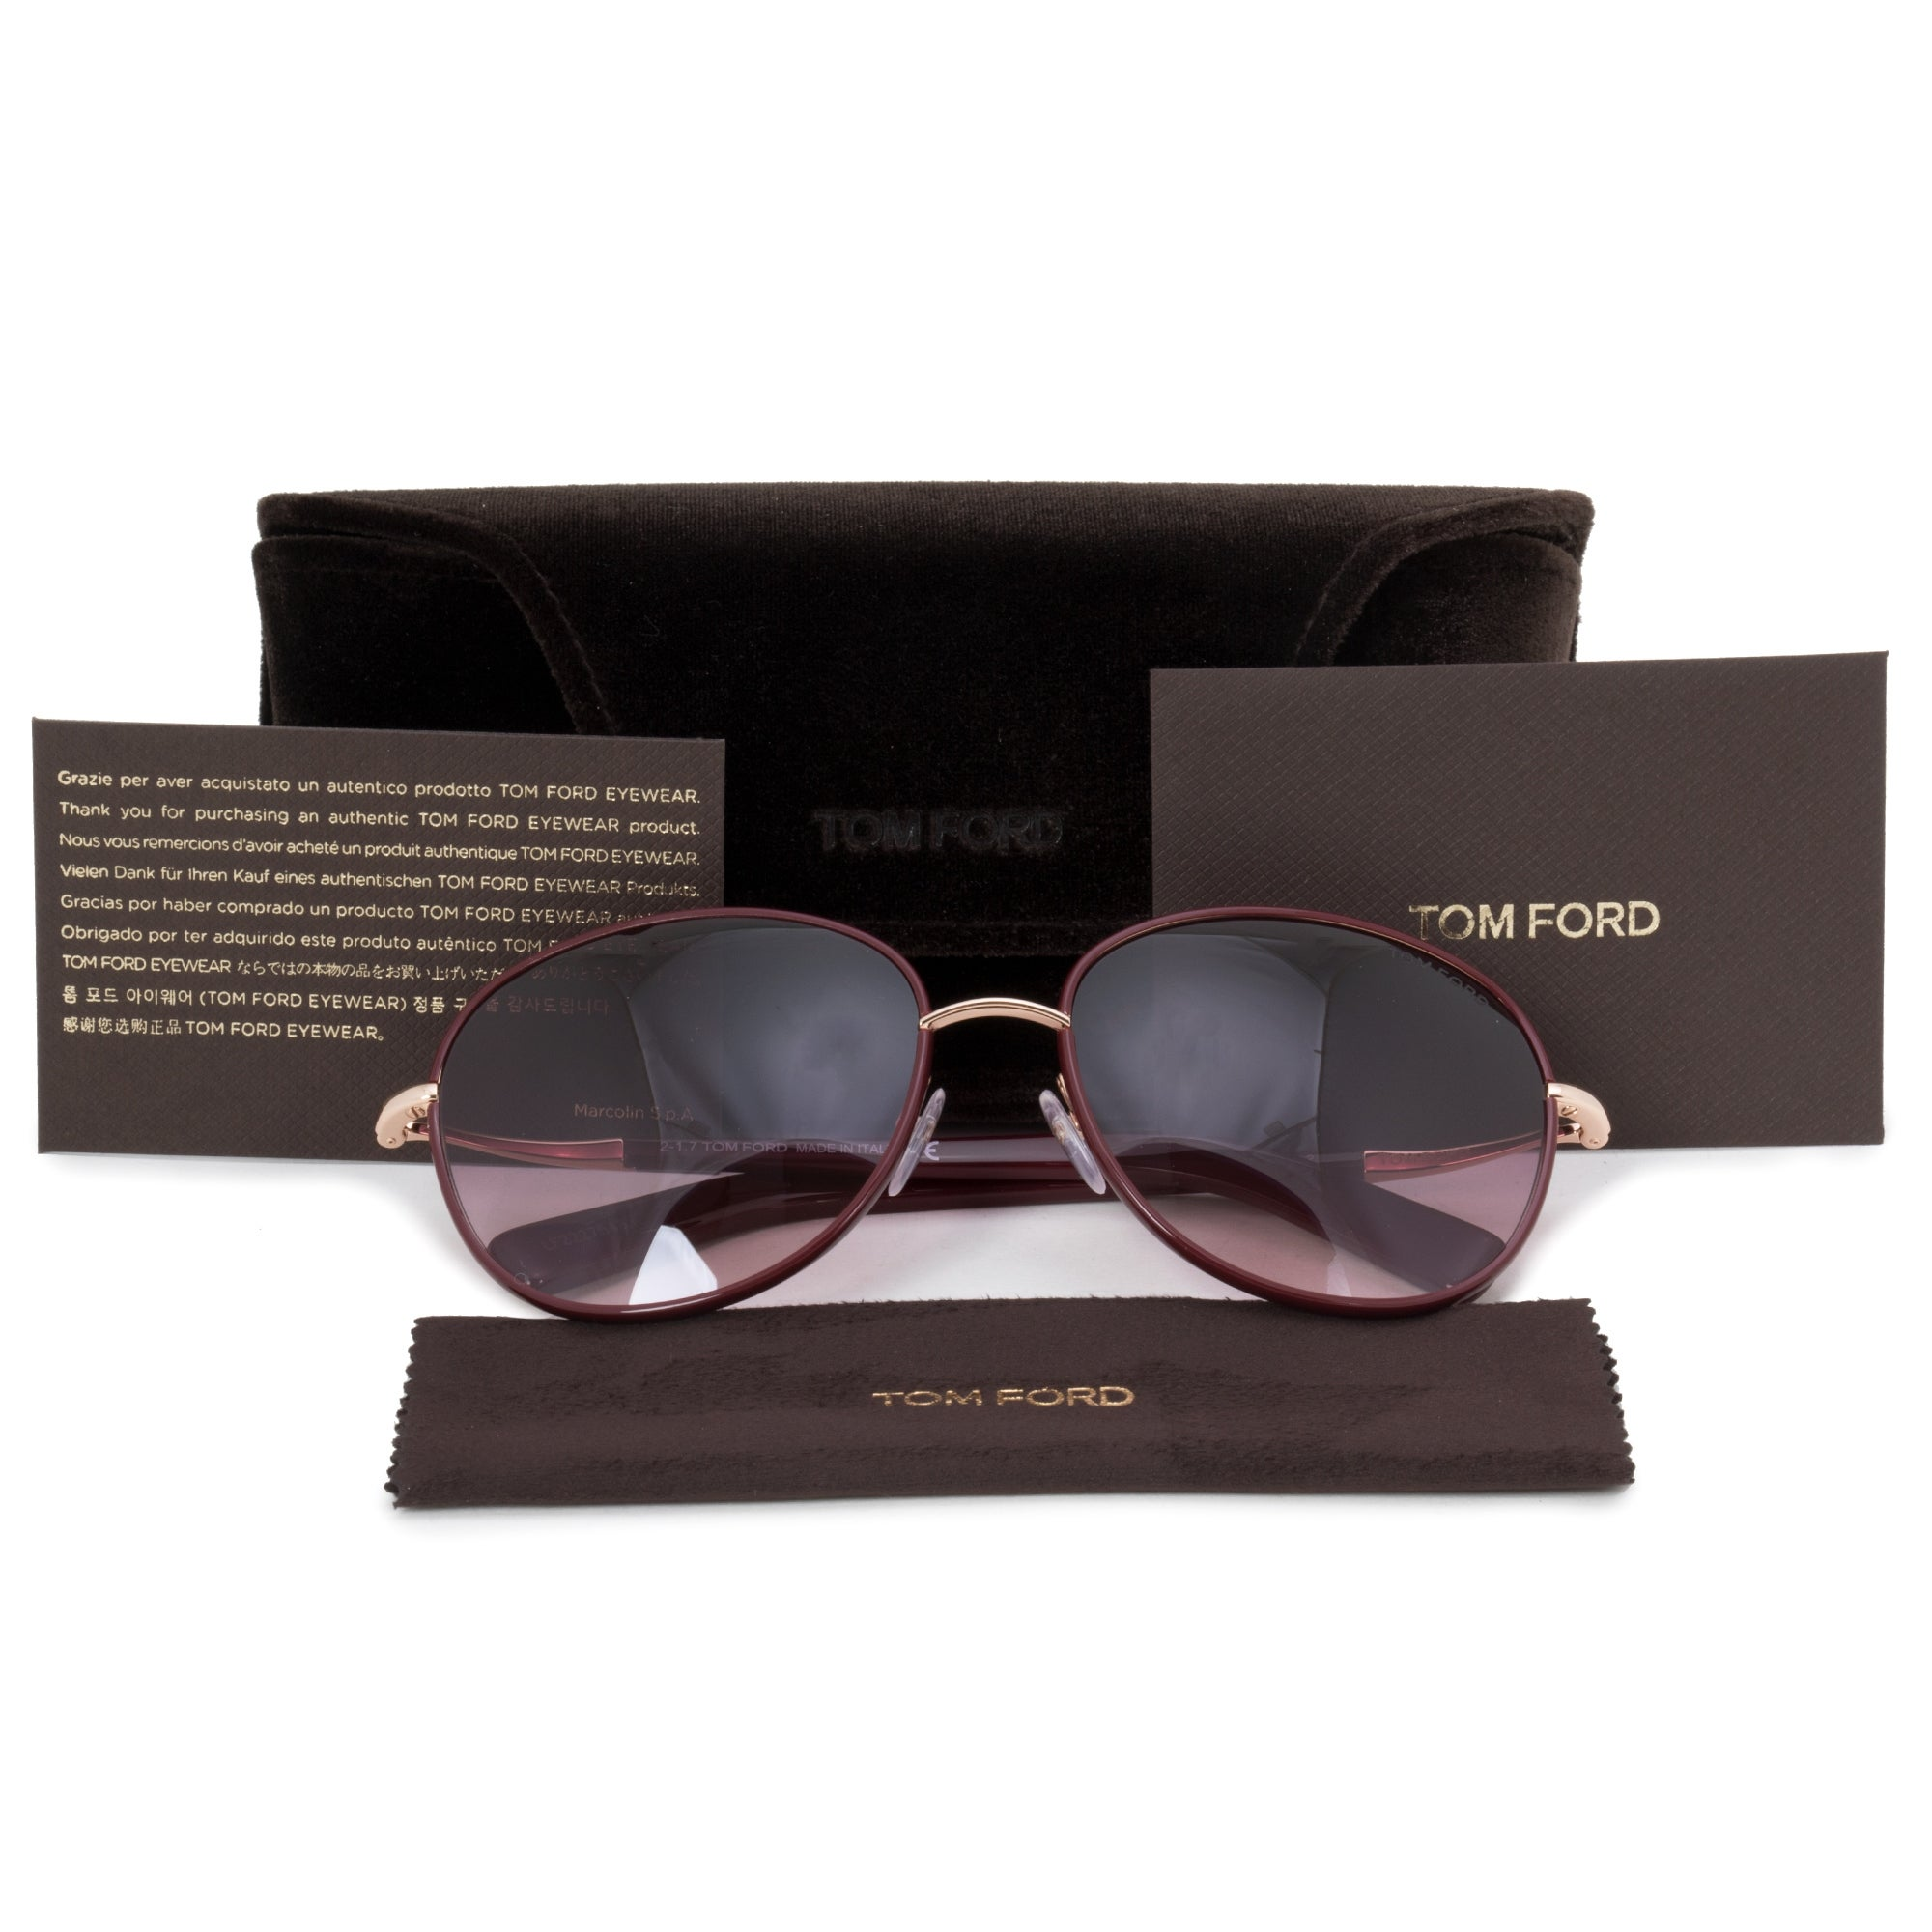 a6b9135756 Shop Tom Ford Georgia Oval Sunglasses FT0498 69T 59 - On Sale - Free  Shipping Today - Overstock - 23138976